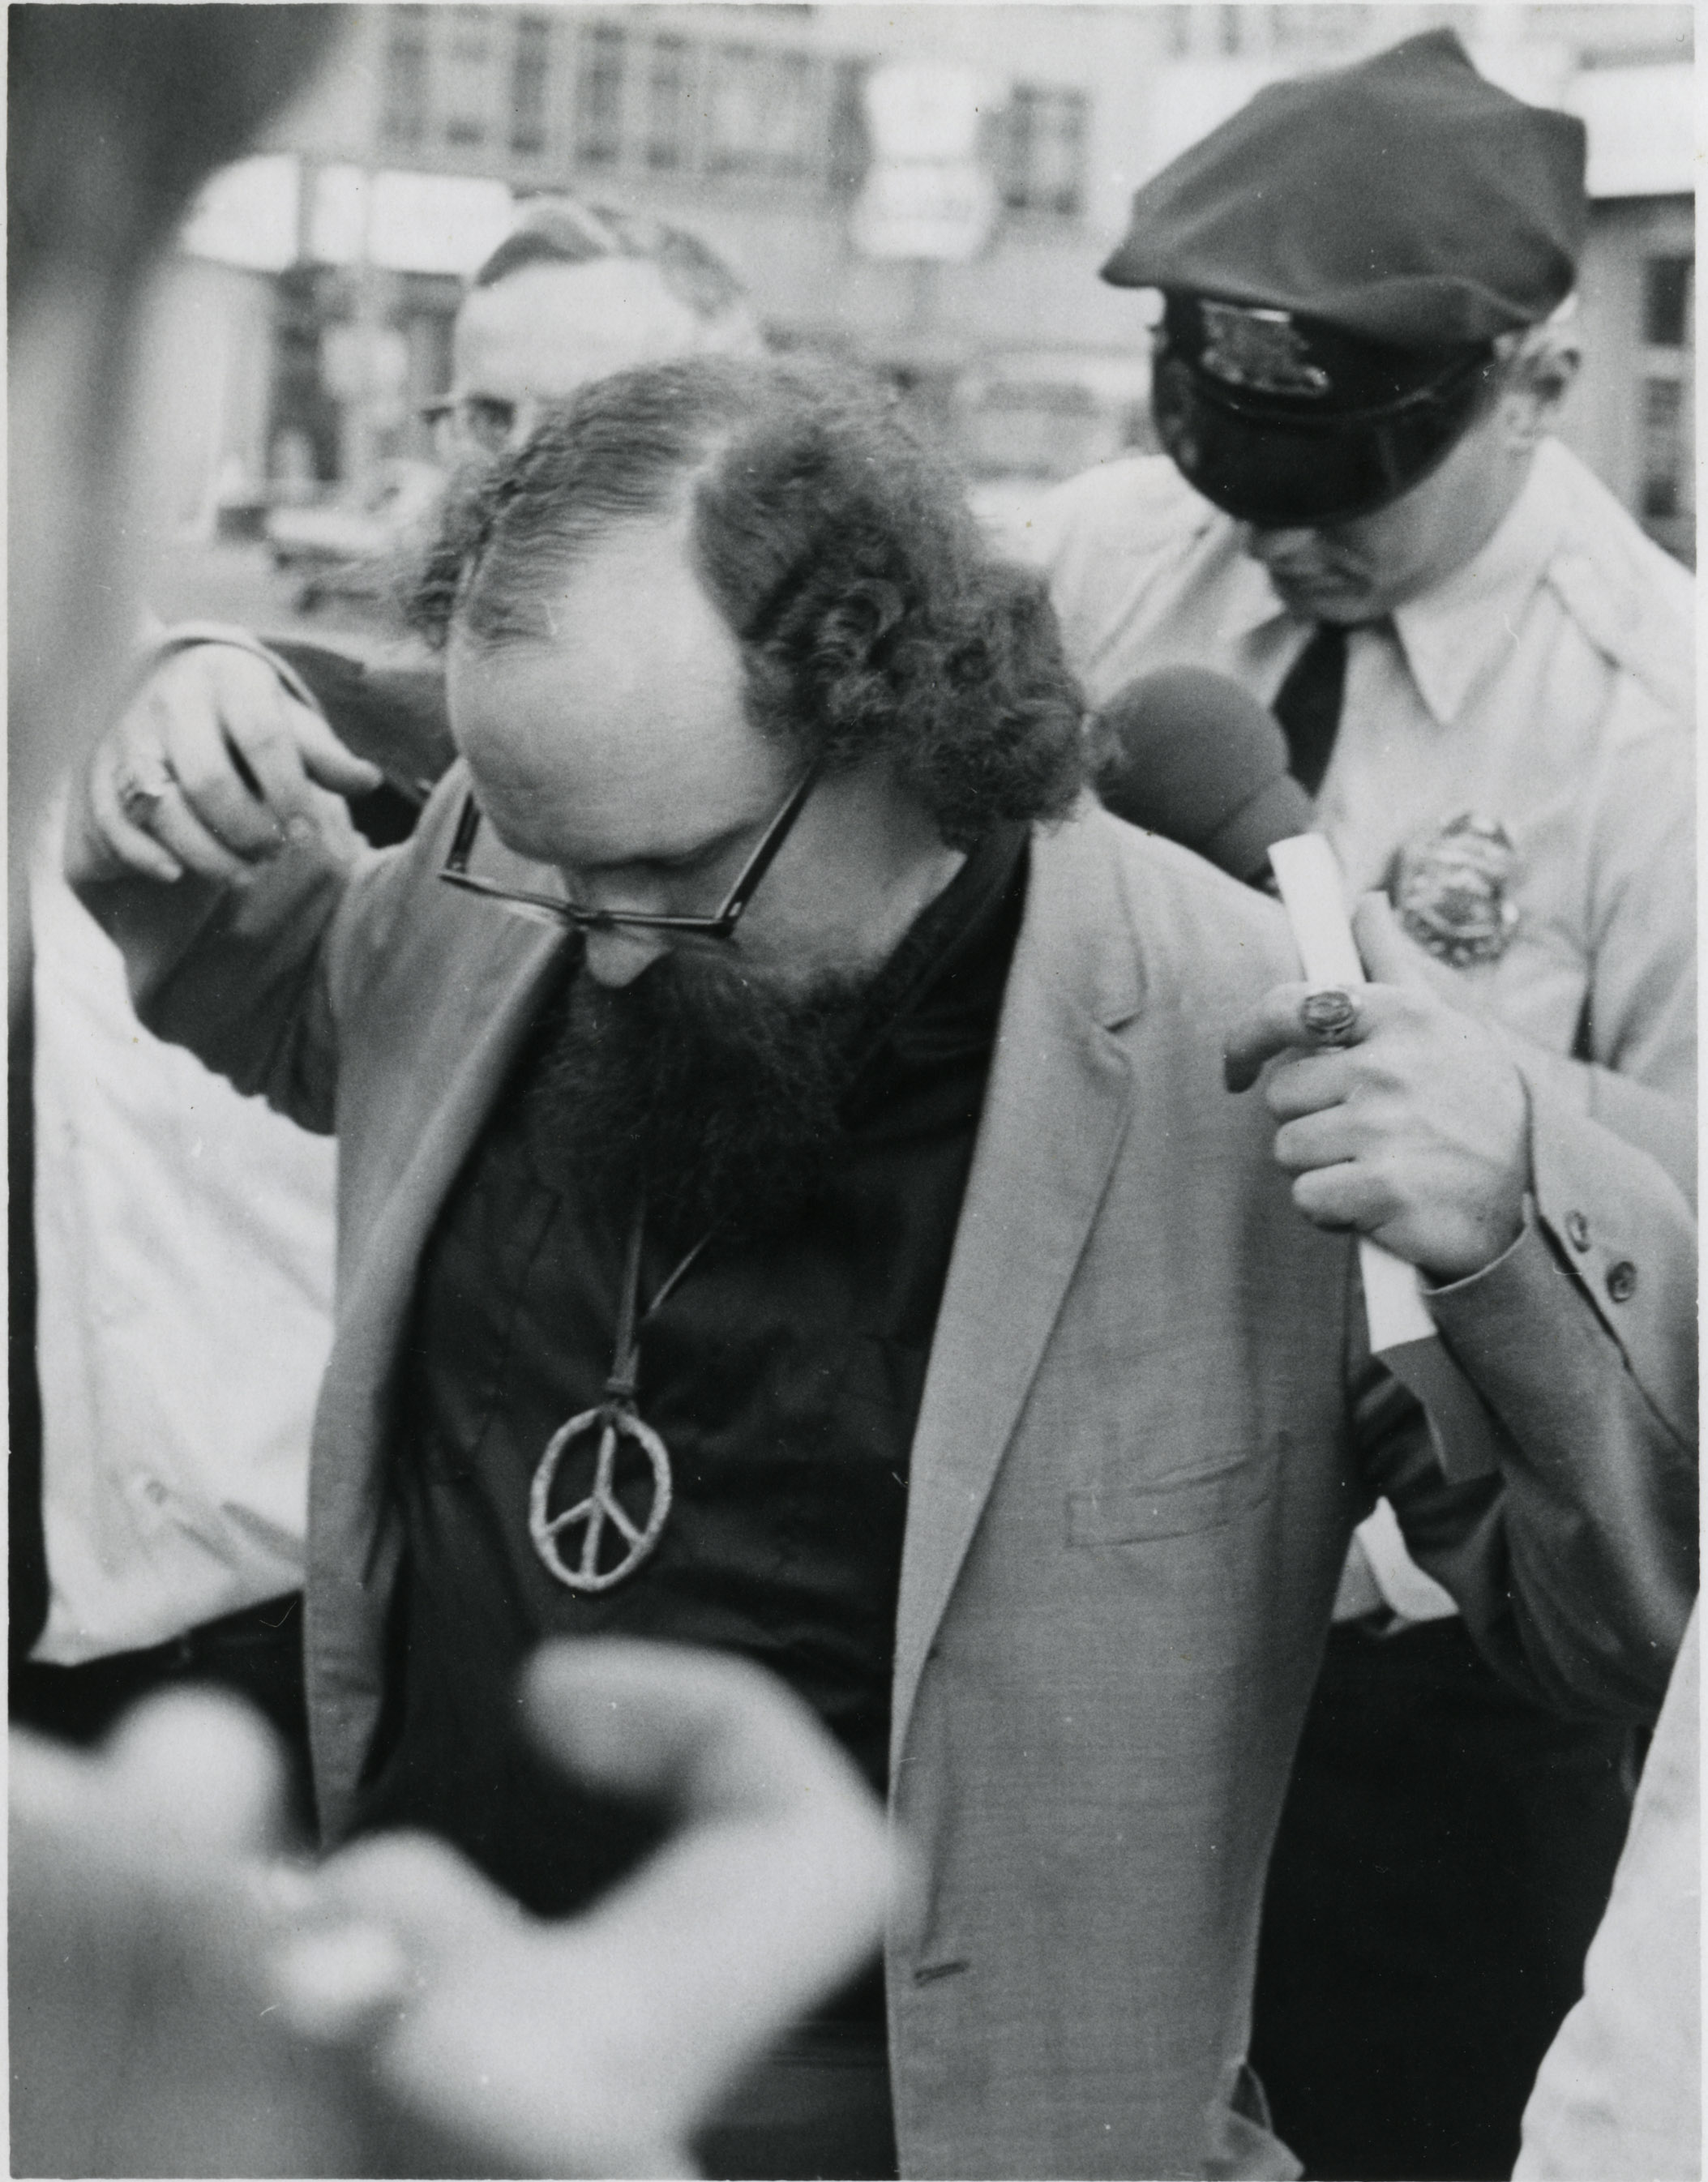 Arrest of Jon Higgenbotham (Milwaukee 14), Sept. 24, 1968